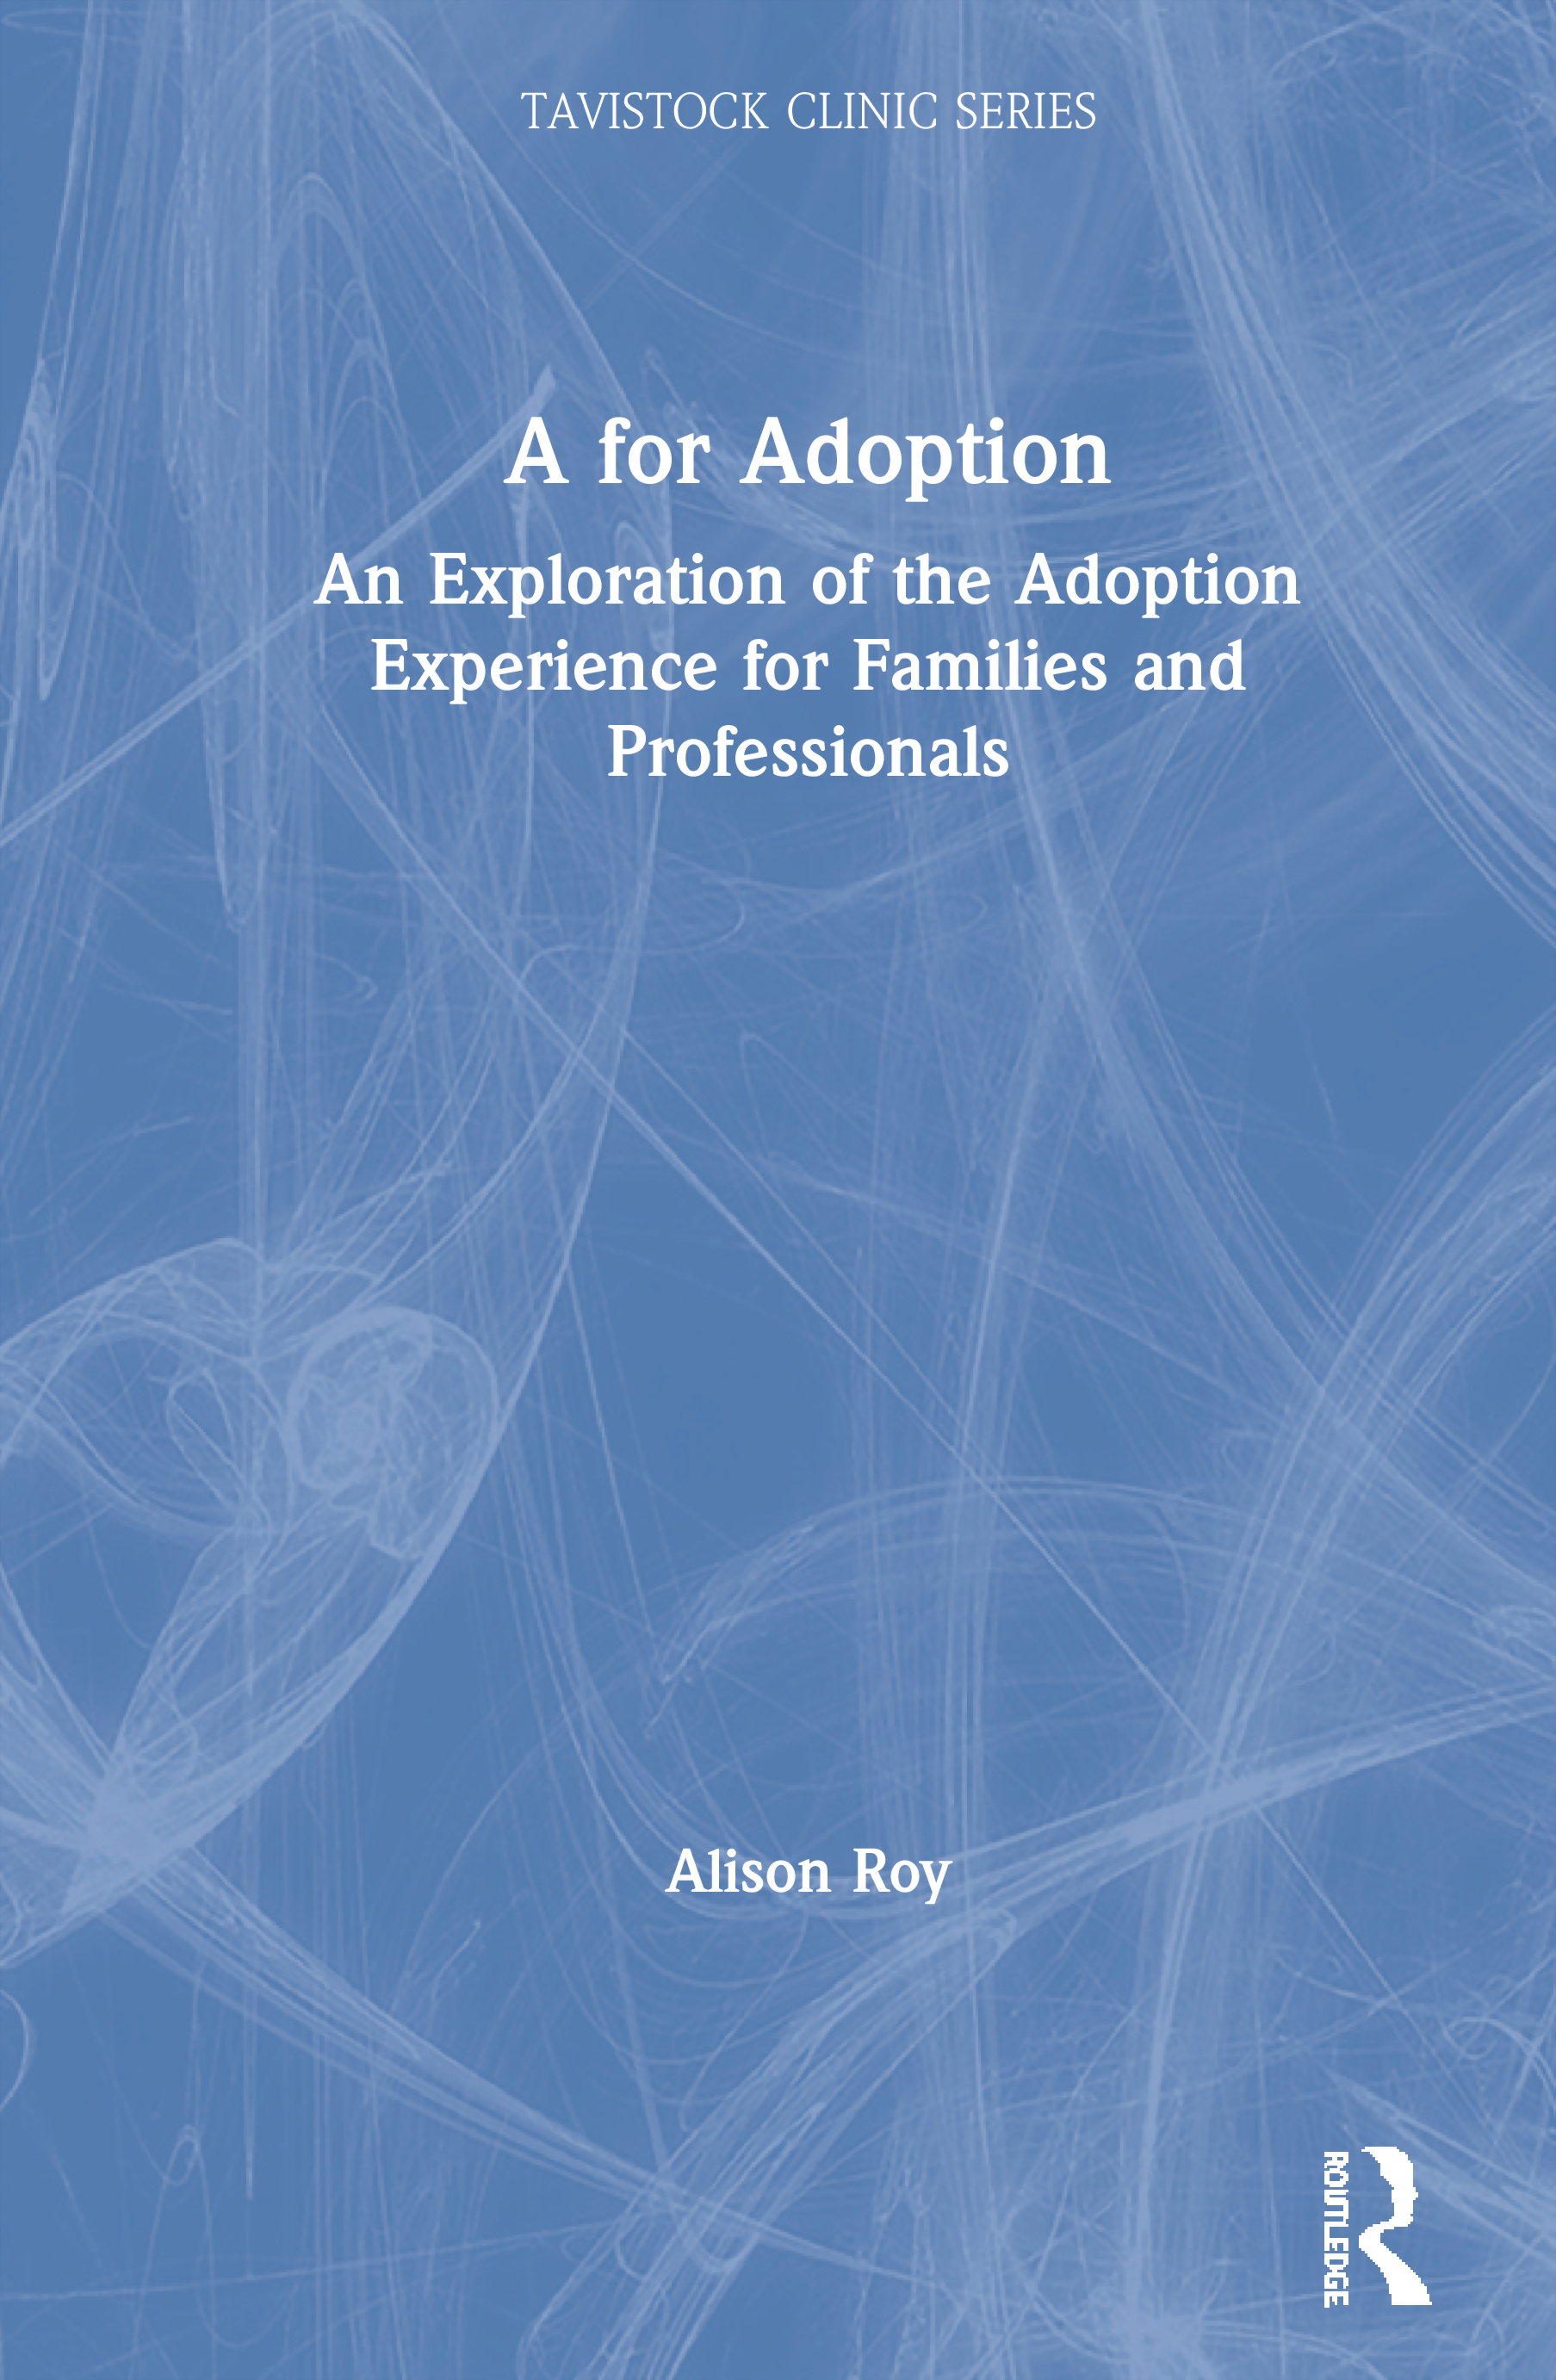 A for Adoption: An Exploration of the Adoption Experience for Families and Professionals book cover